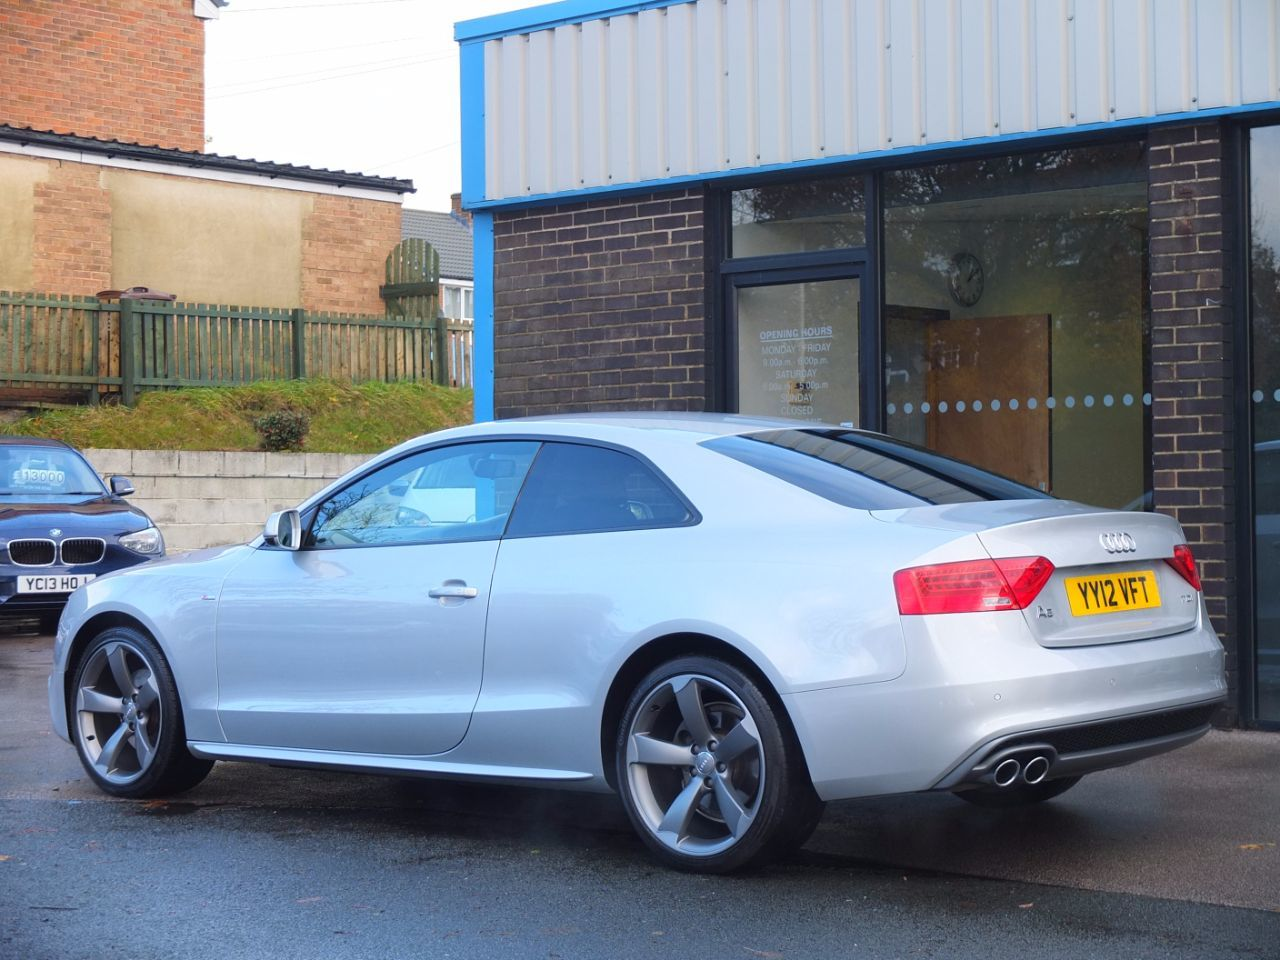 Audi A5 Coupe 2.0 TDI 177 Black Edition Coupe Diesel Ice Silver Metallic